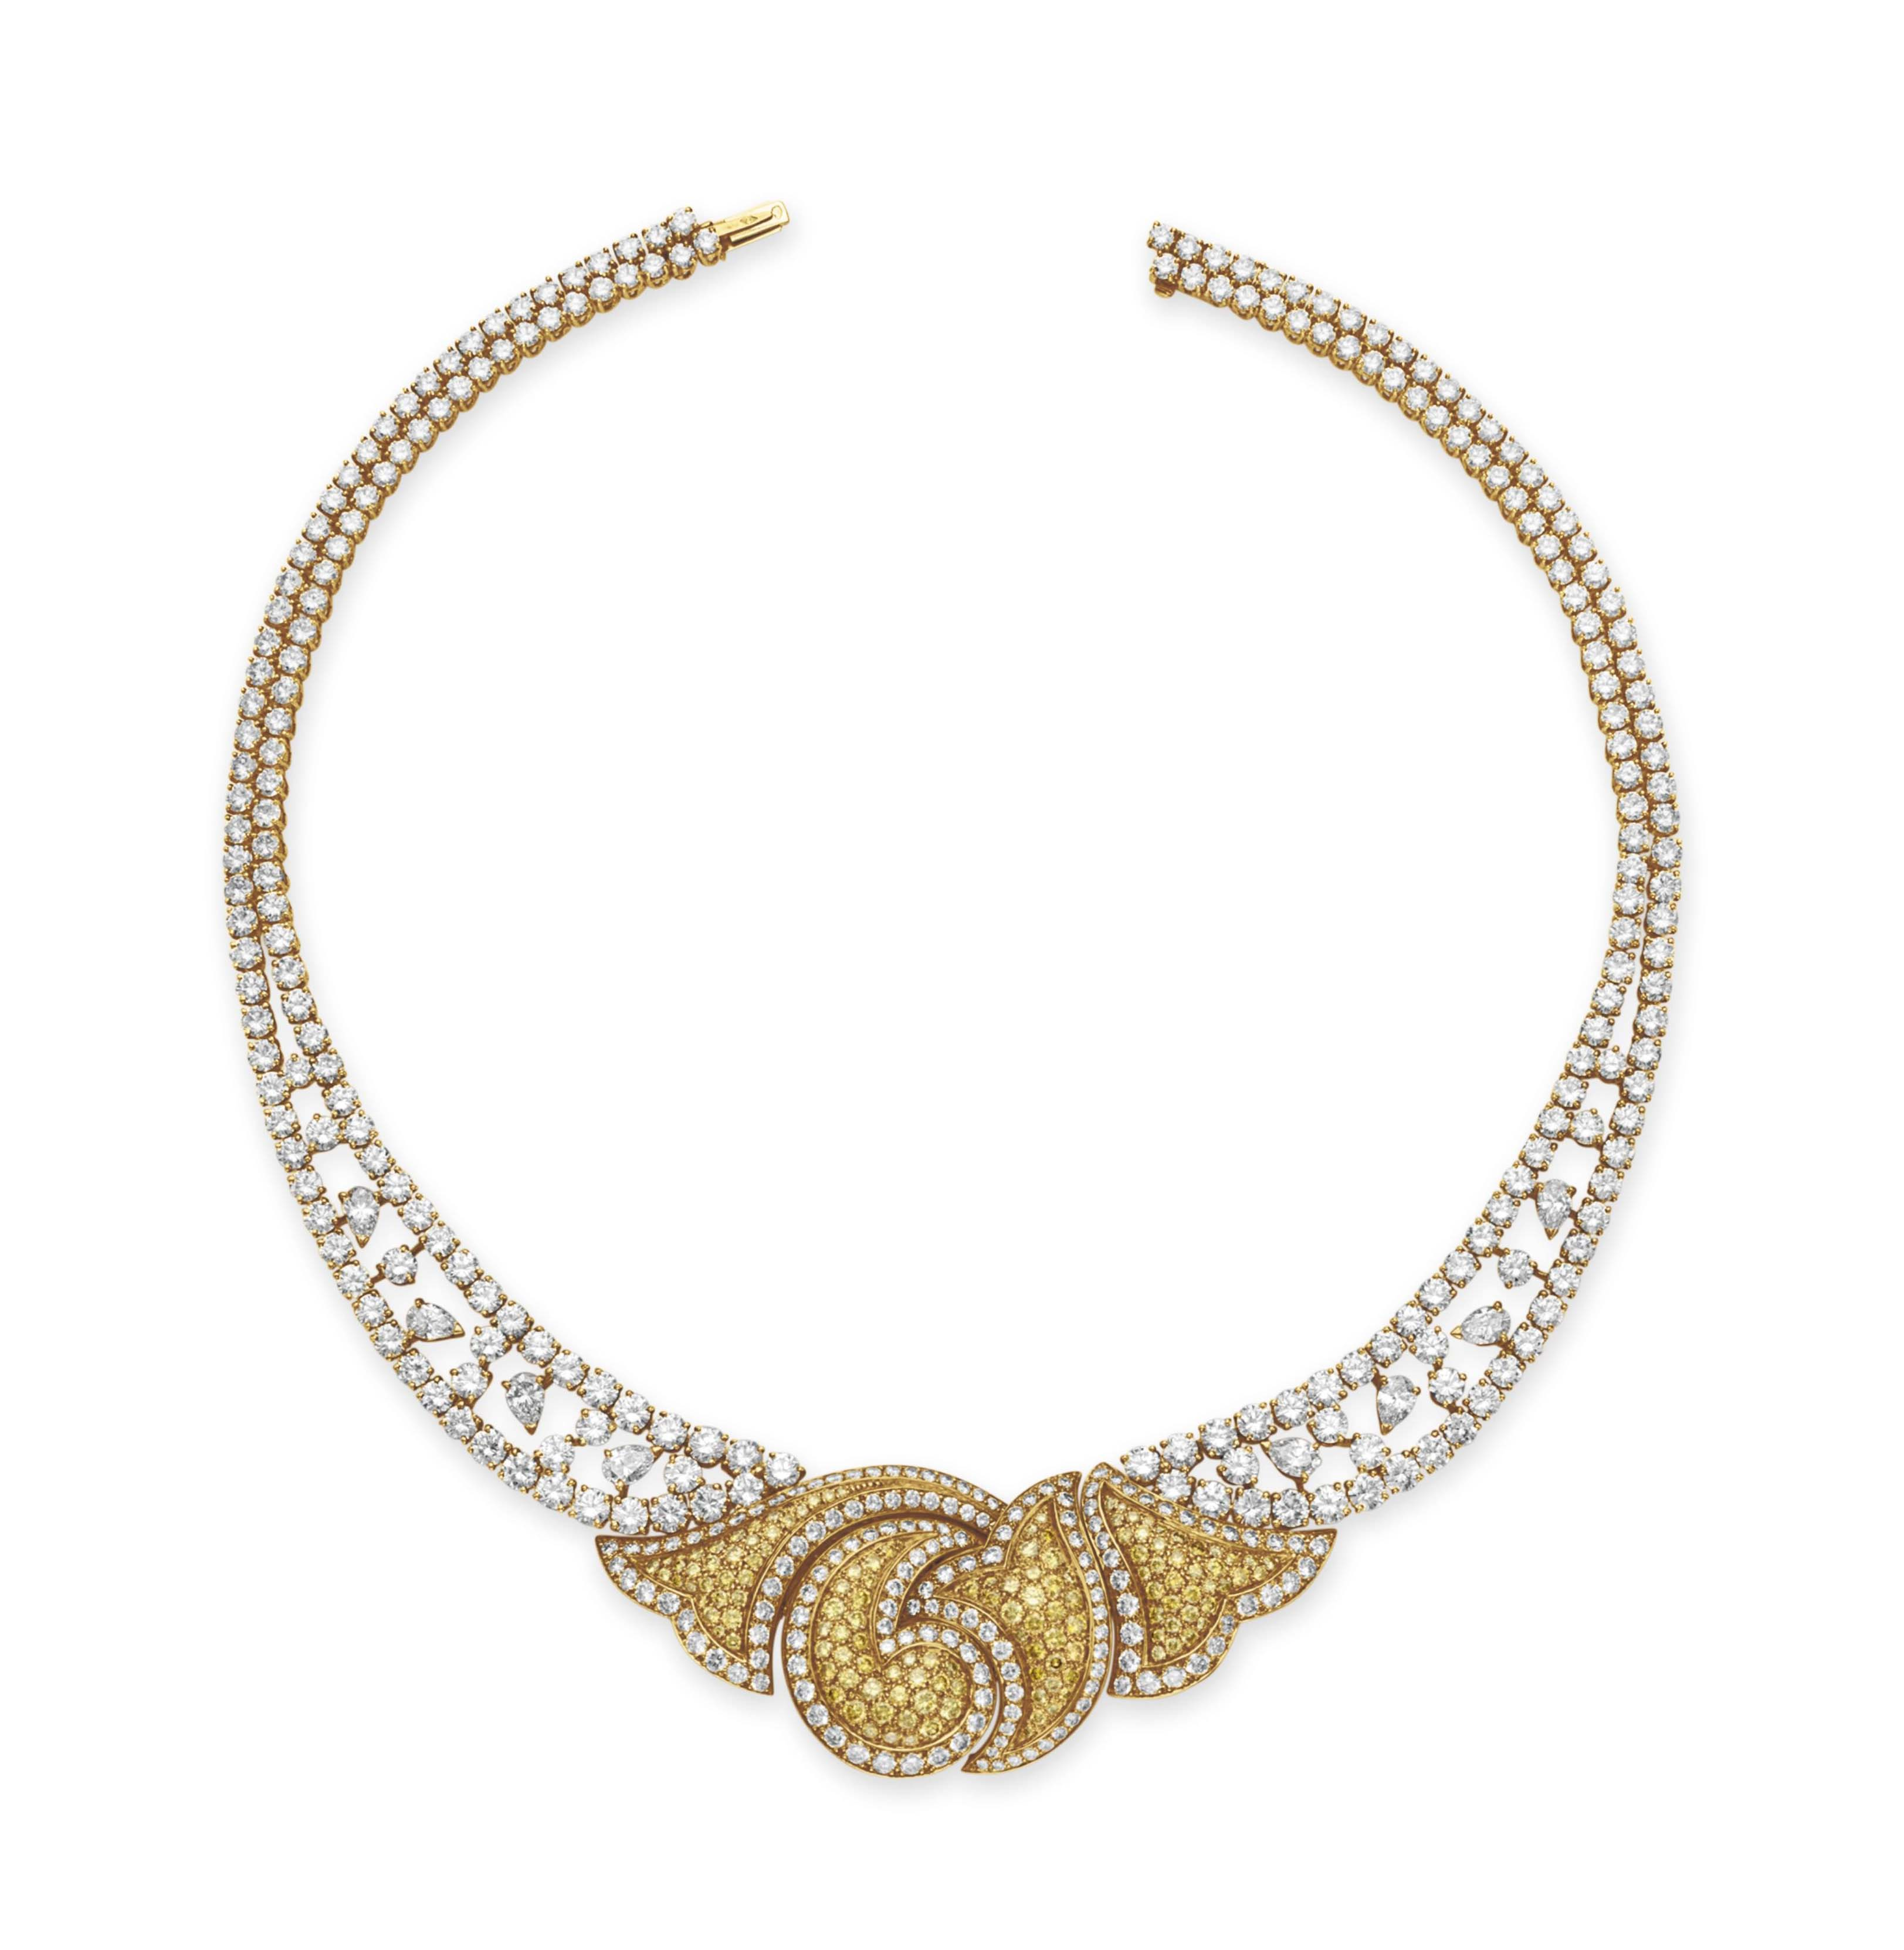 A COLORED DIAMOND AND DIAMOND NECKLACE, BY BOUCHERON